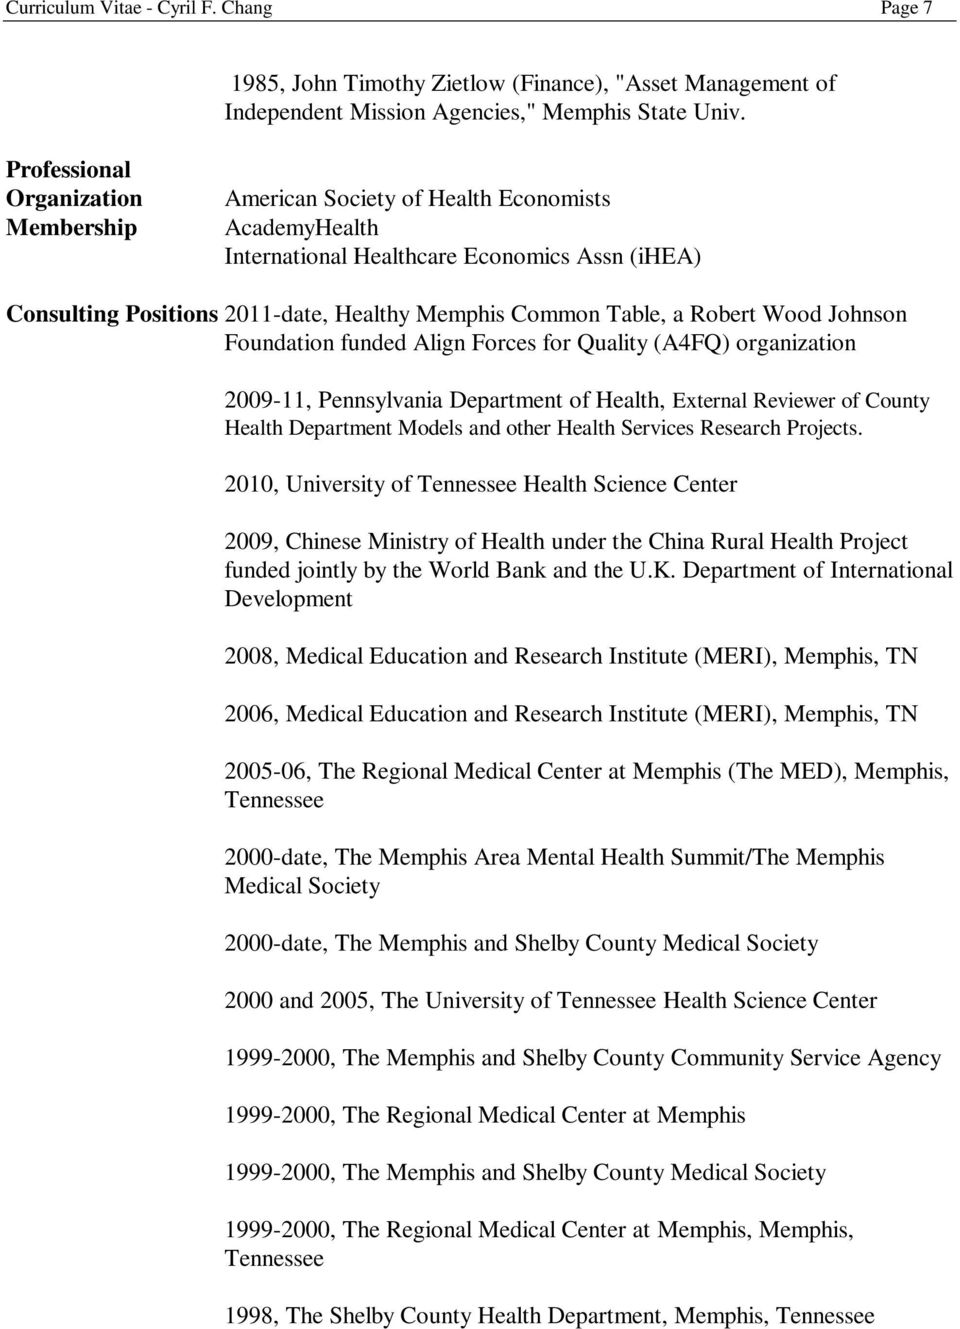 Robert Wood Johnson Foundation funded Align Forces for Quality (A4FQ) organization 2009-11, Pennsylvania Department of Health, External Reviewer of County Health Department Models and other Health